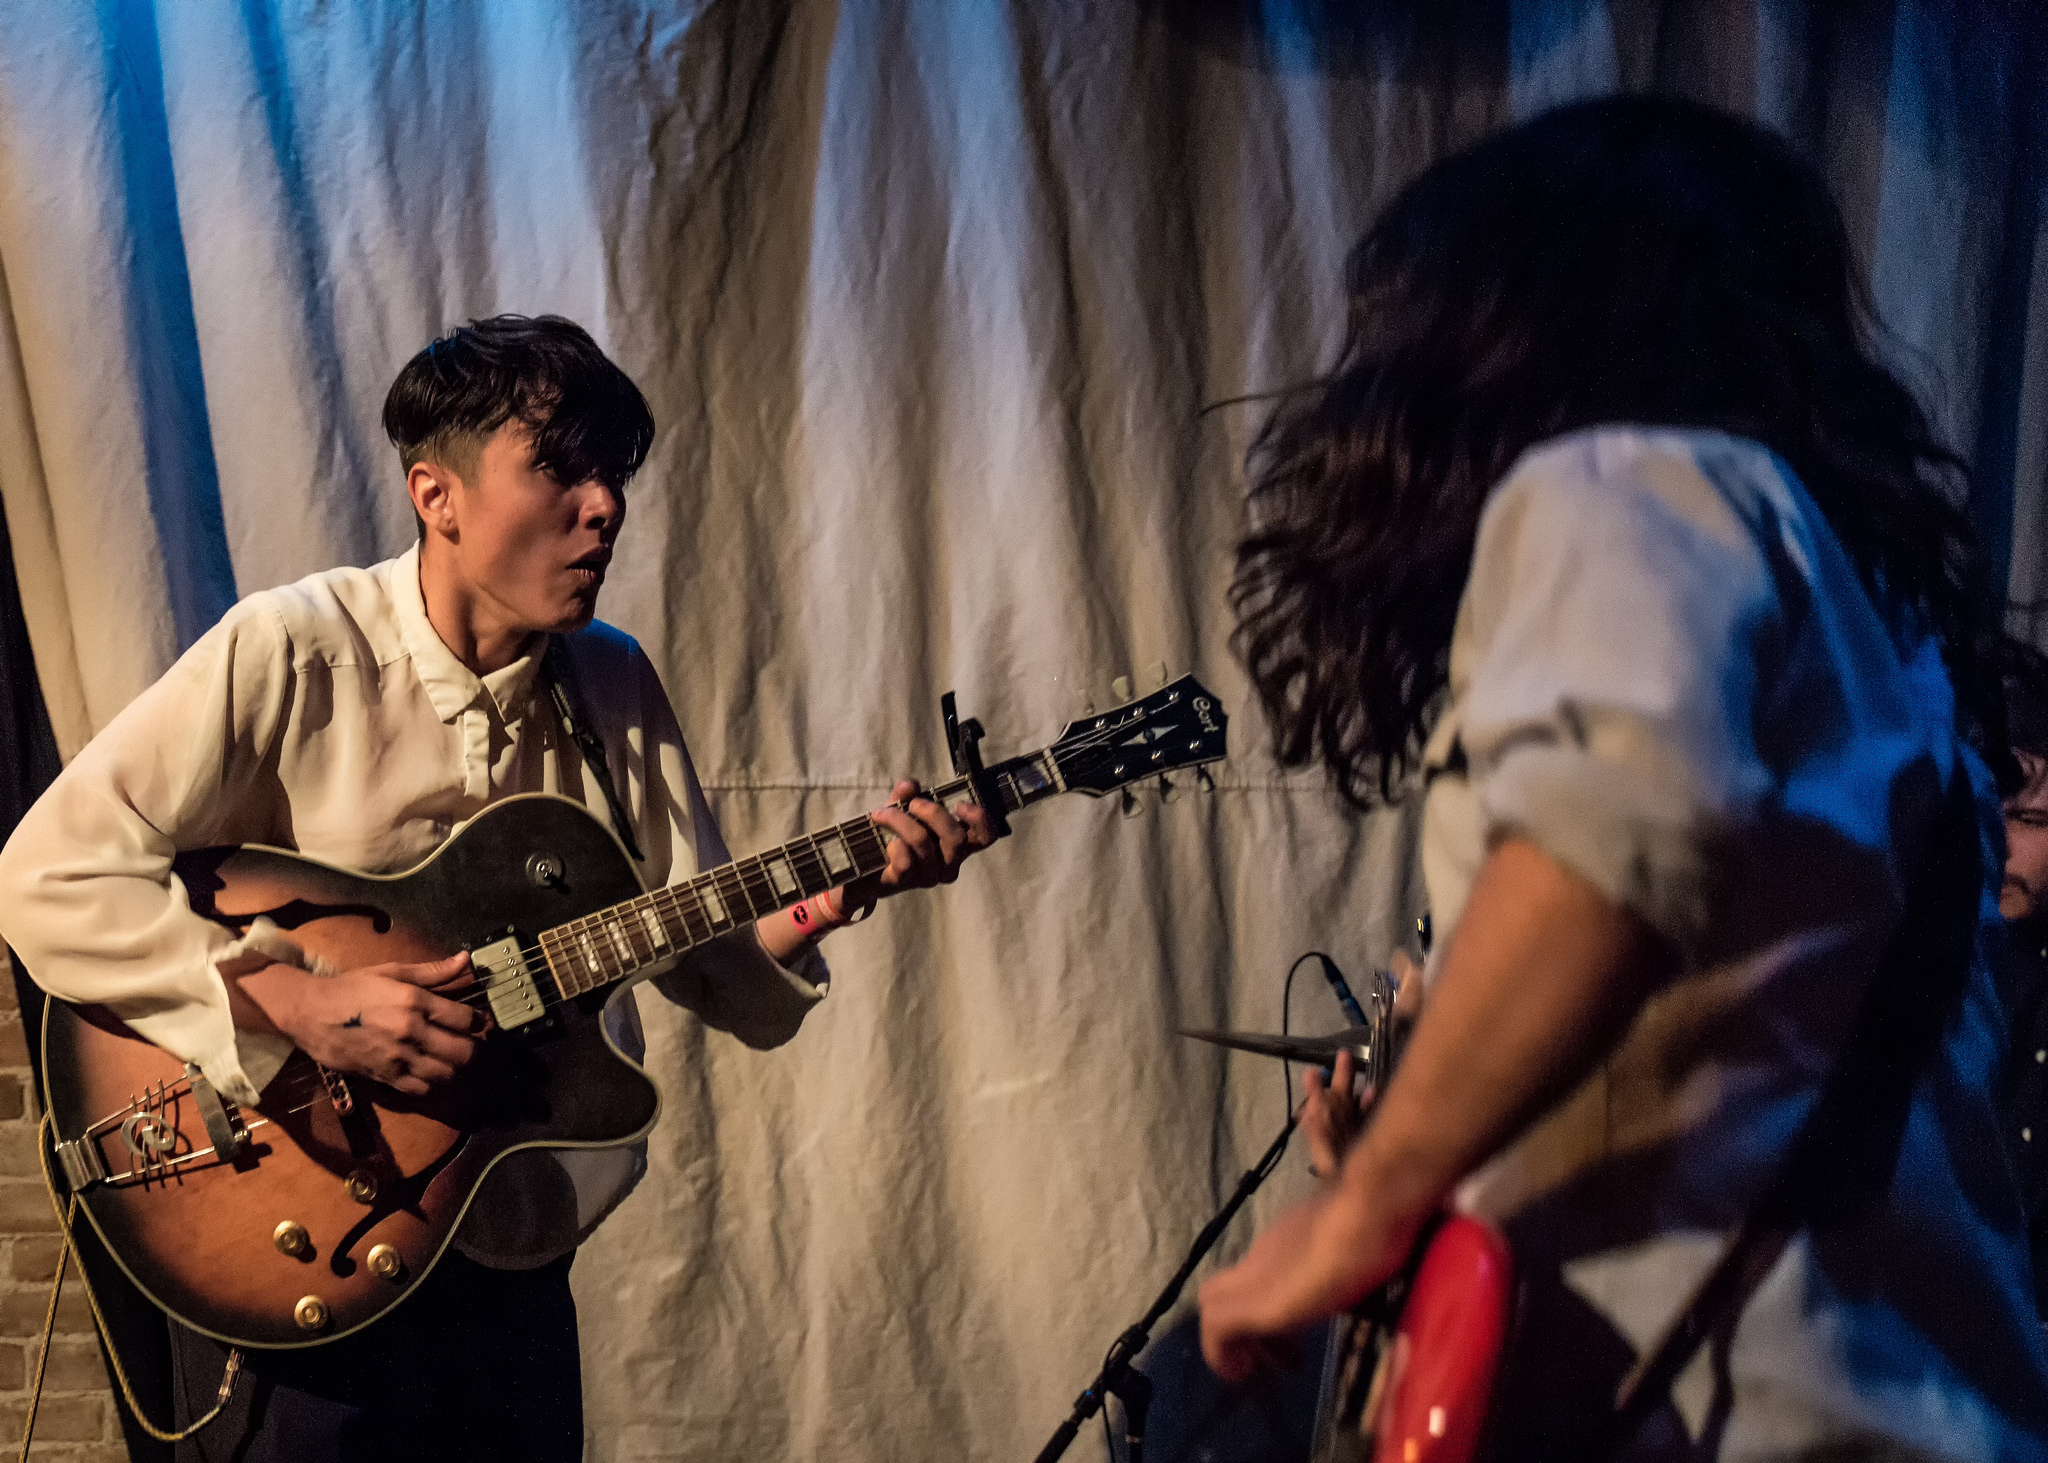 Kera and The Lesbians-Pengilly Saloon-Treefort 2015-Credit-Michael Smith | ©Treefort Music Fest/Flickr